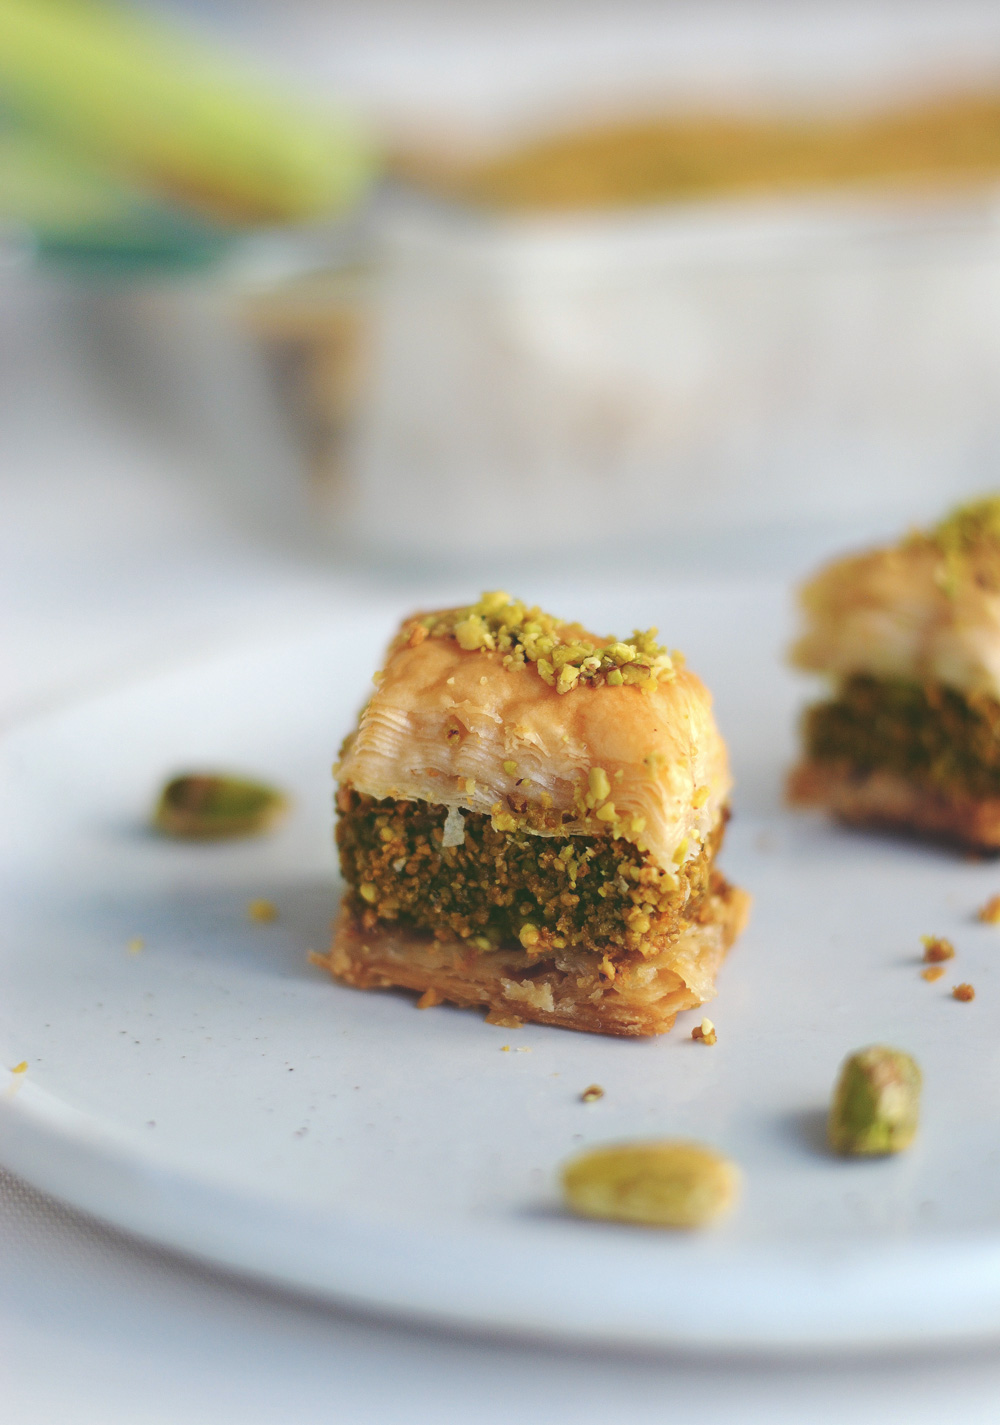 Pistachio Baklava cross-section filling